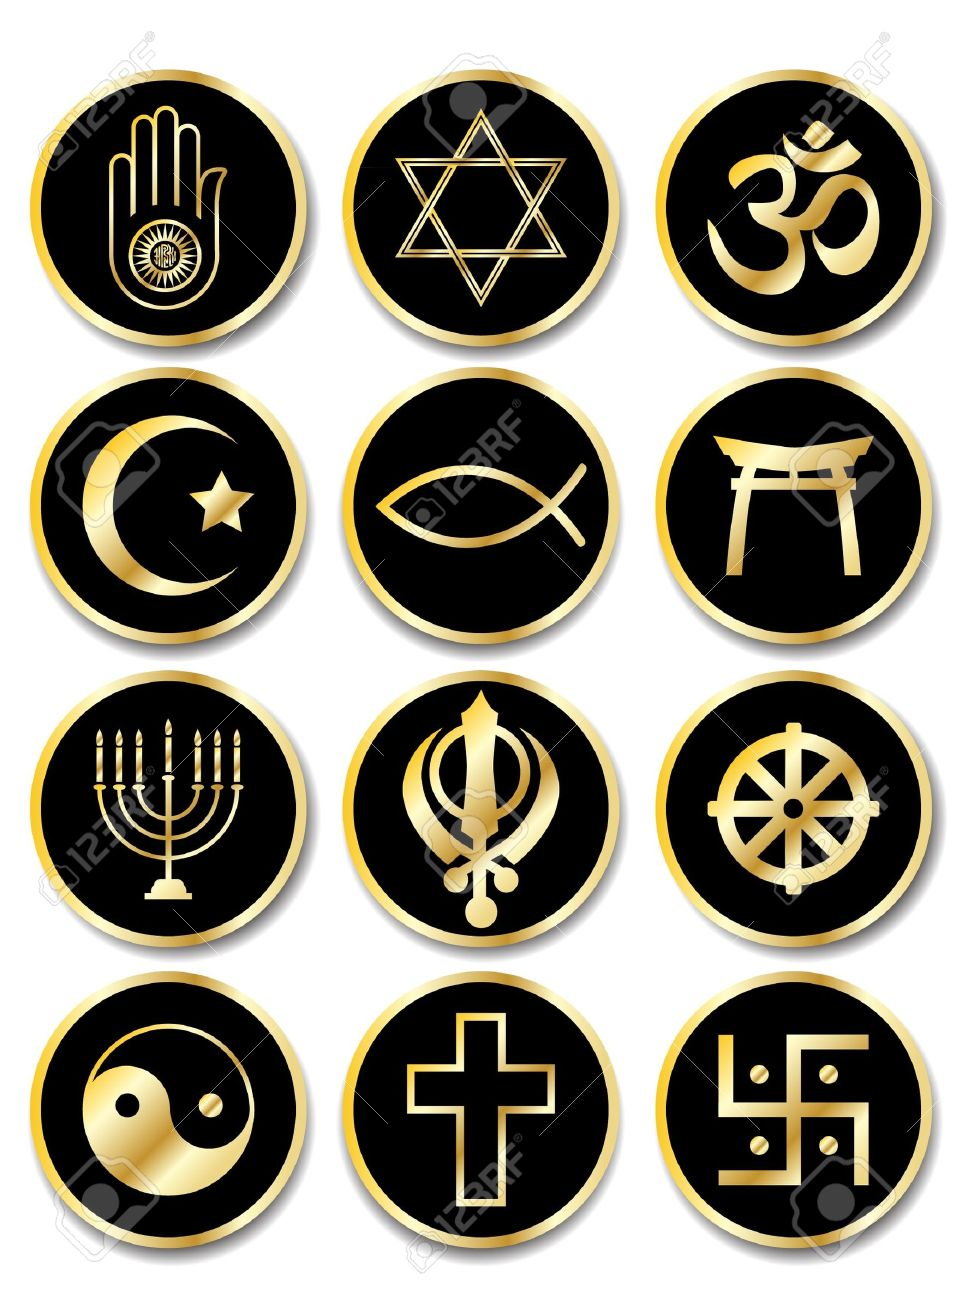 A set of stickers - Religious symbols. Gold isolated on black. EPS10 vector format. Stock Vector - 10308785